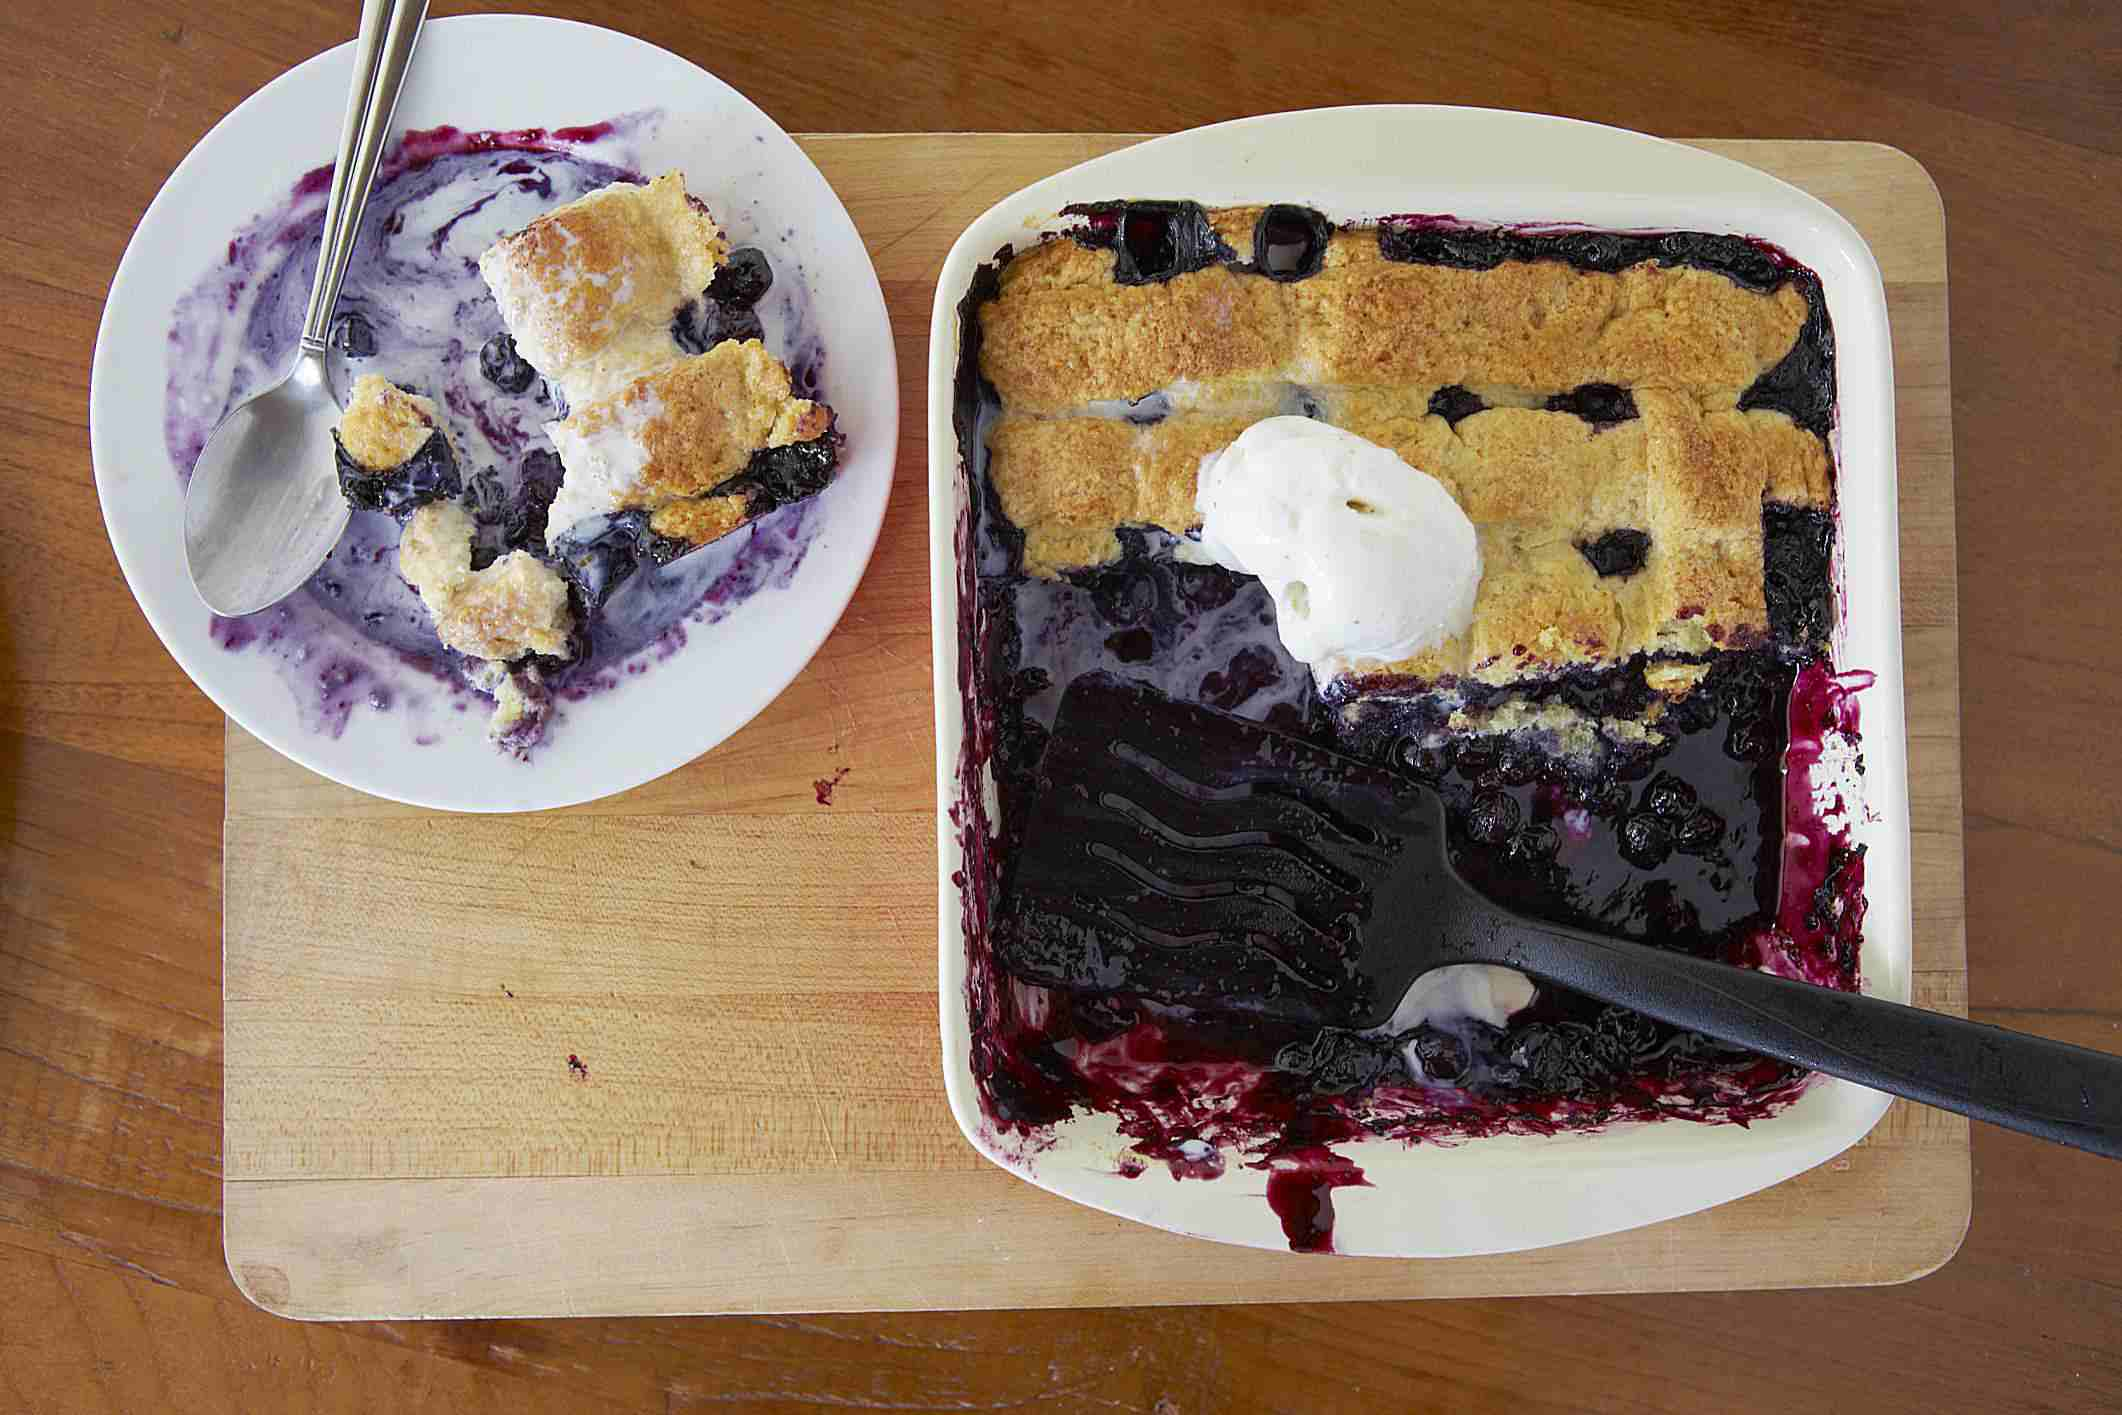 Blueberry cobbler being served from a baking dish